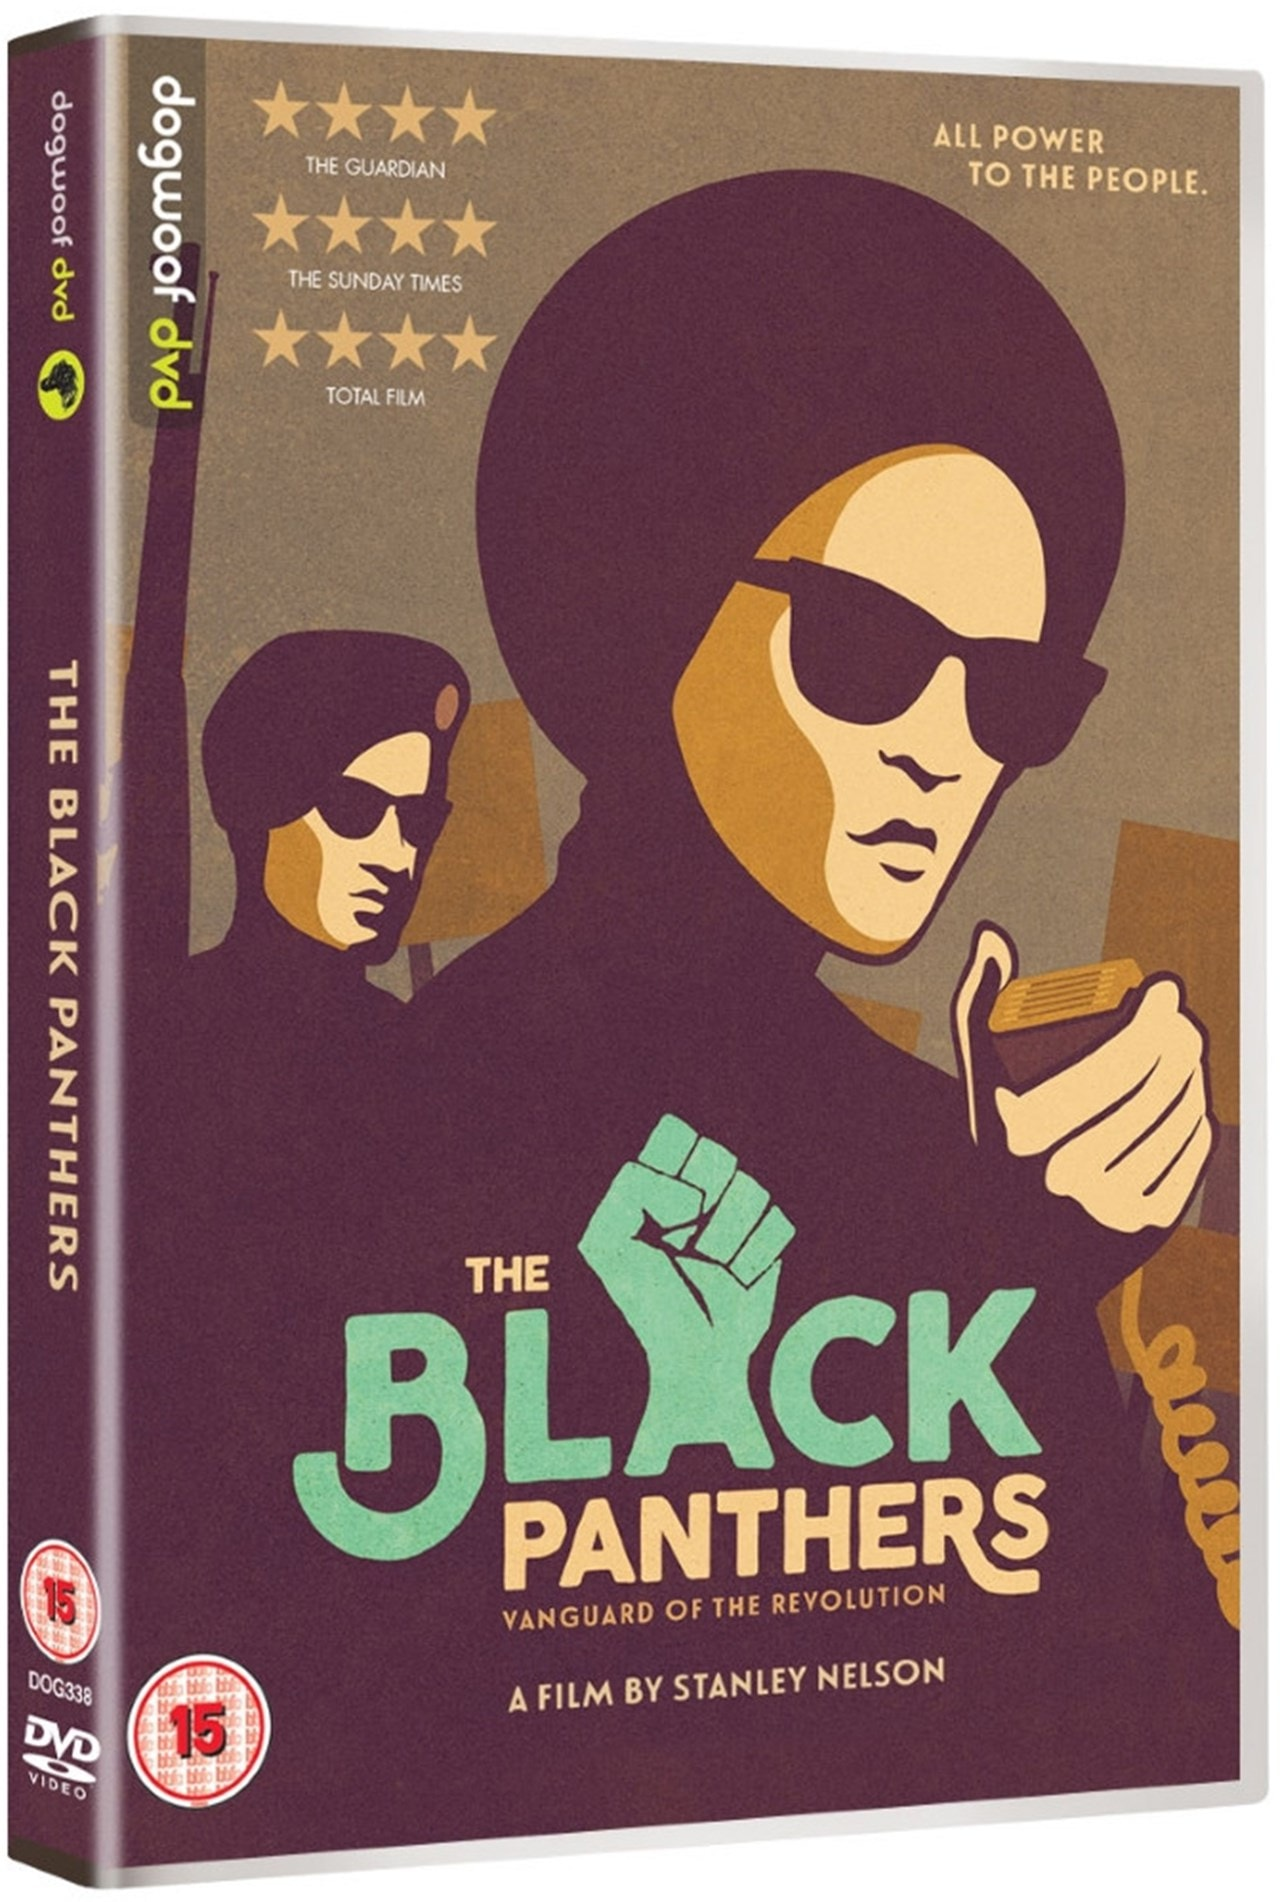 The Black Panthers - Vanguard of the Revolution - 2